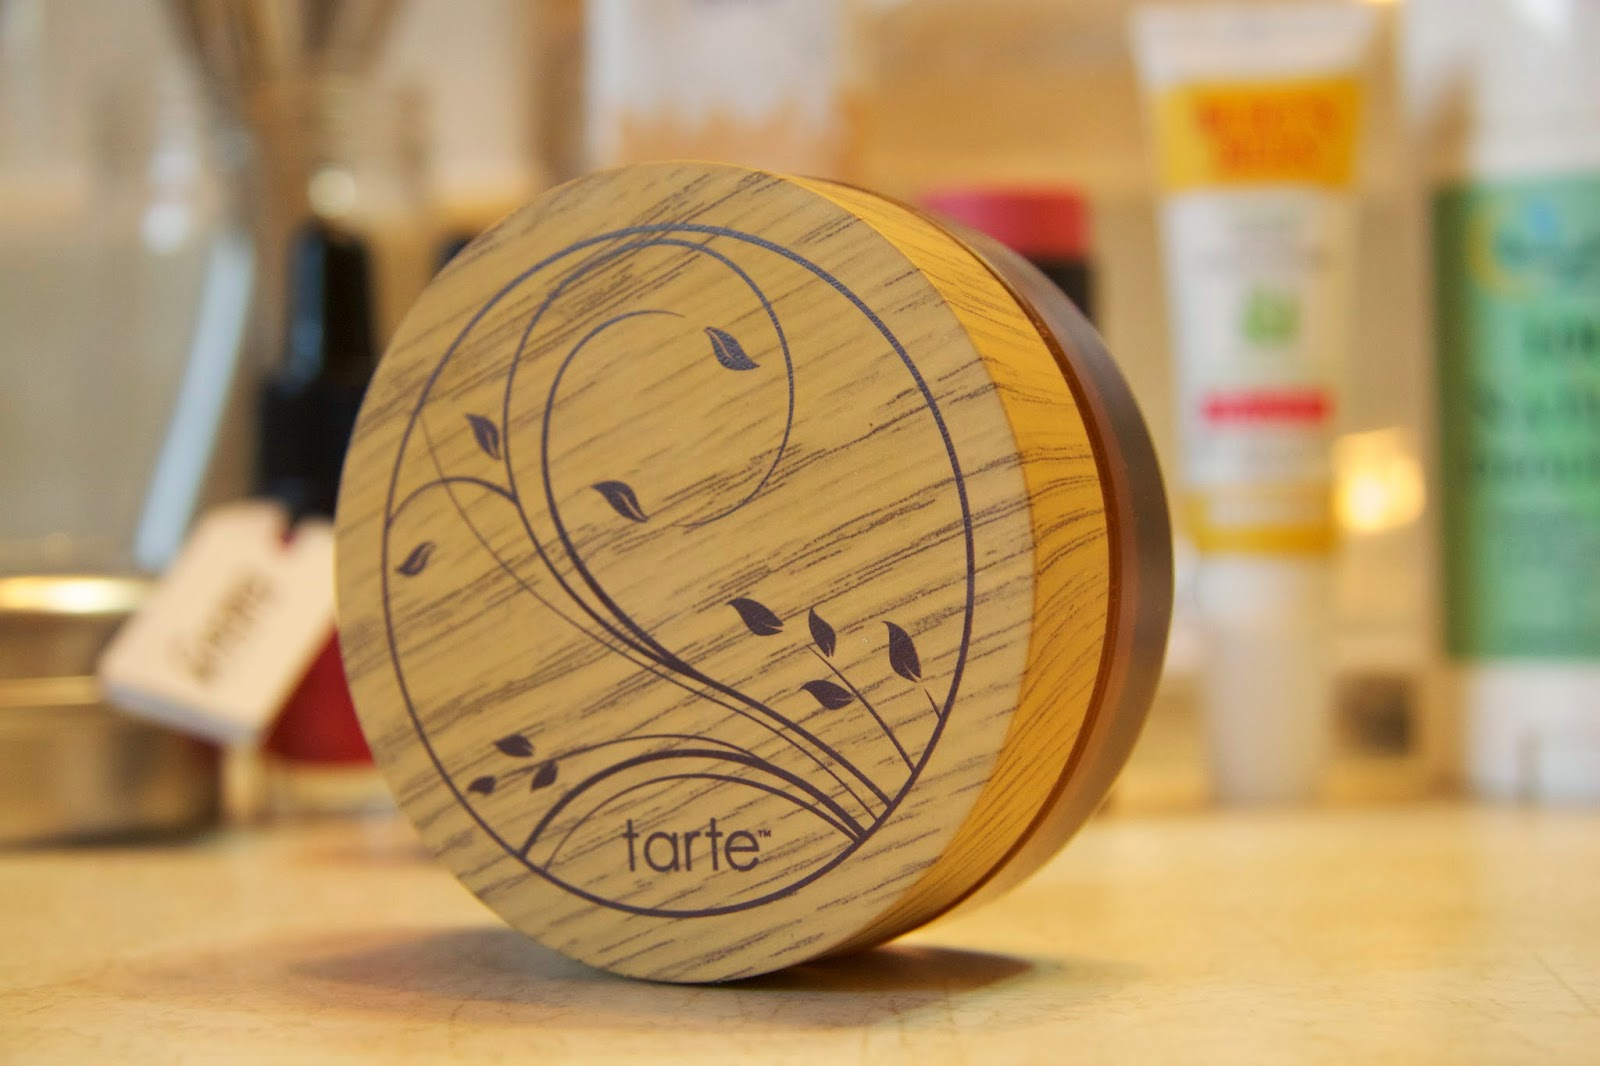 Review on the Tarte Powder foundation in Light-medium beige